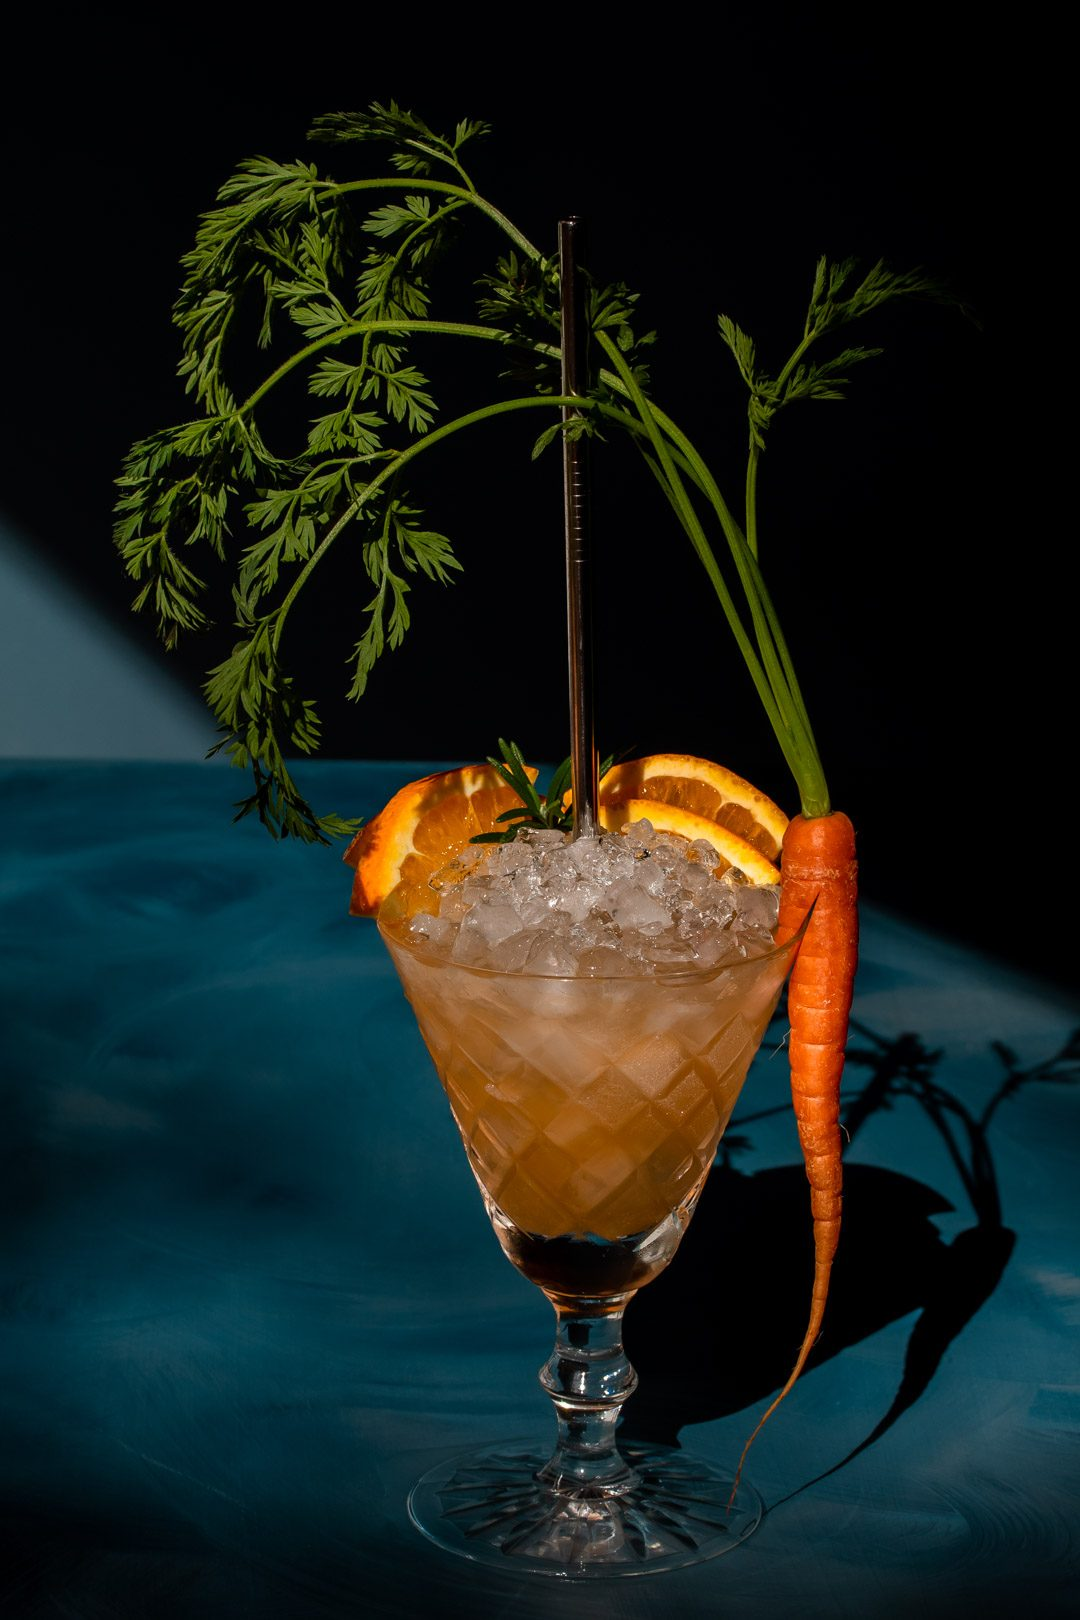 carrot shrub daisy cocktail from 45 degrees with hard light and shadows